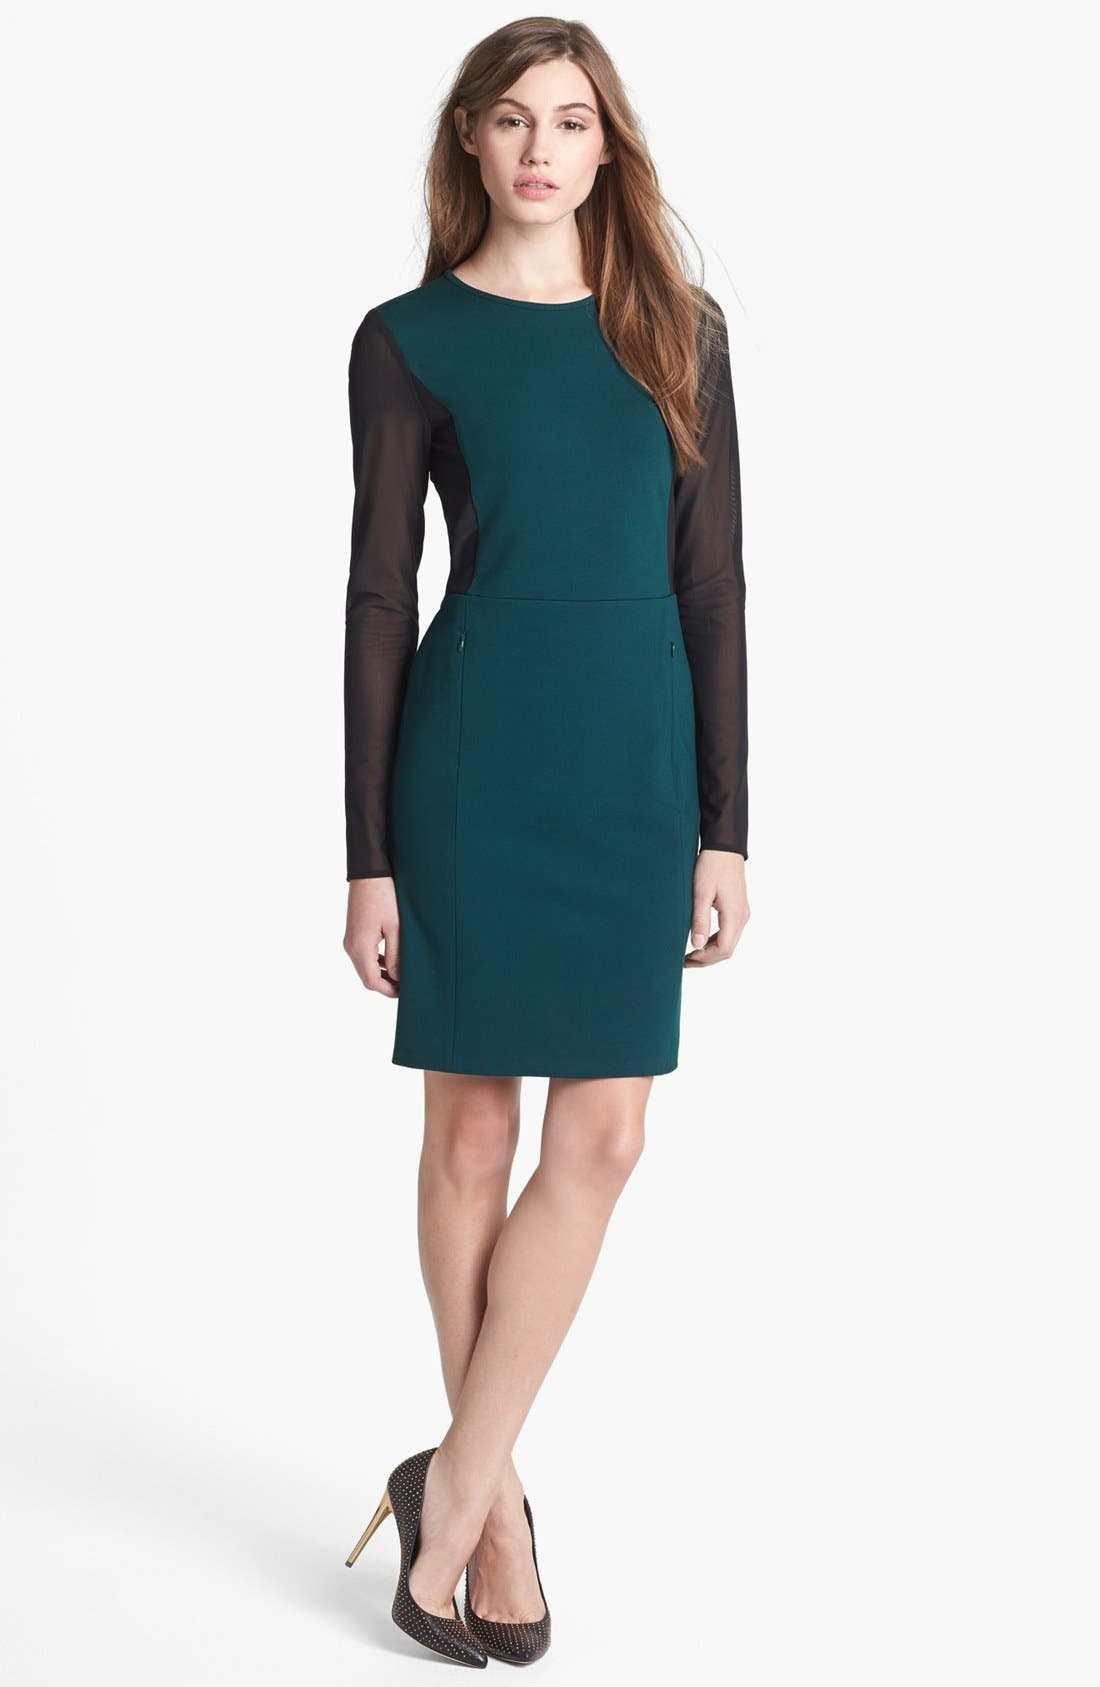 Main Image - Kenneth Cole New York 'Verrin' Dress